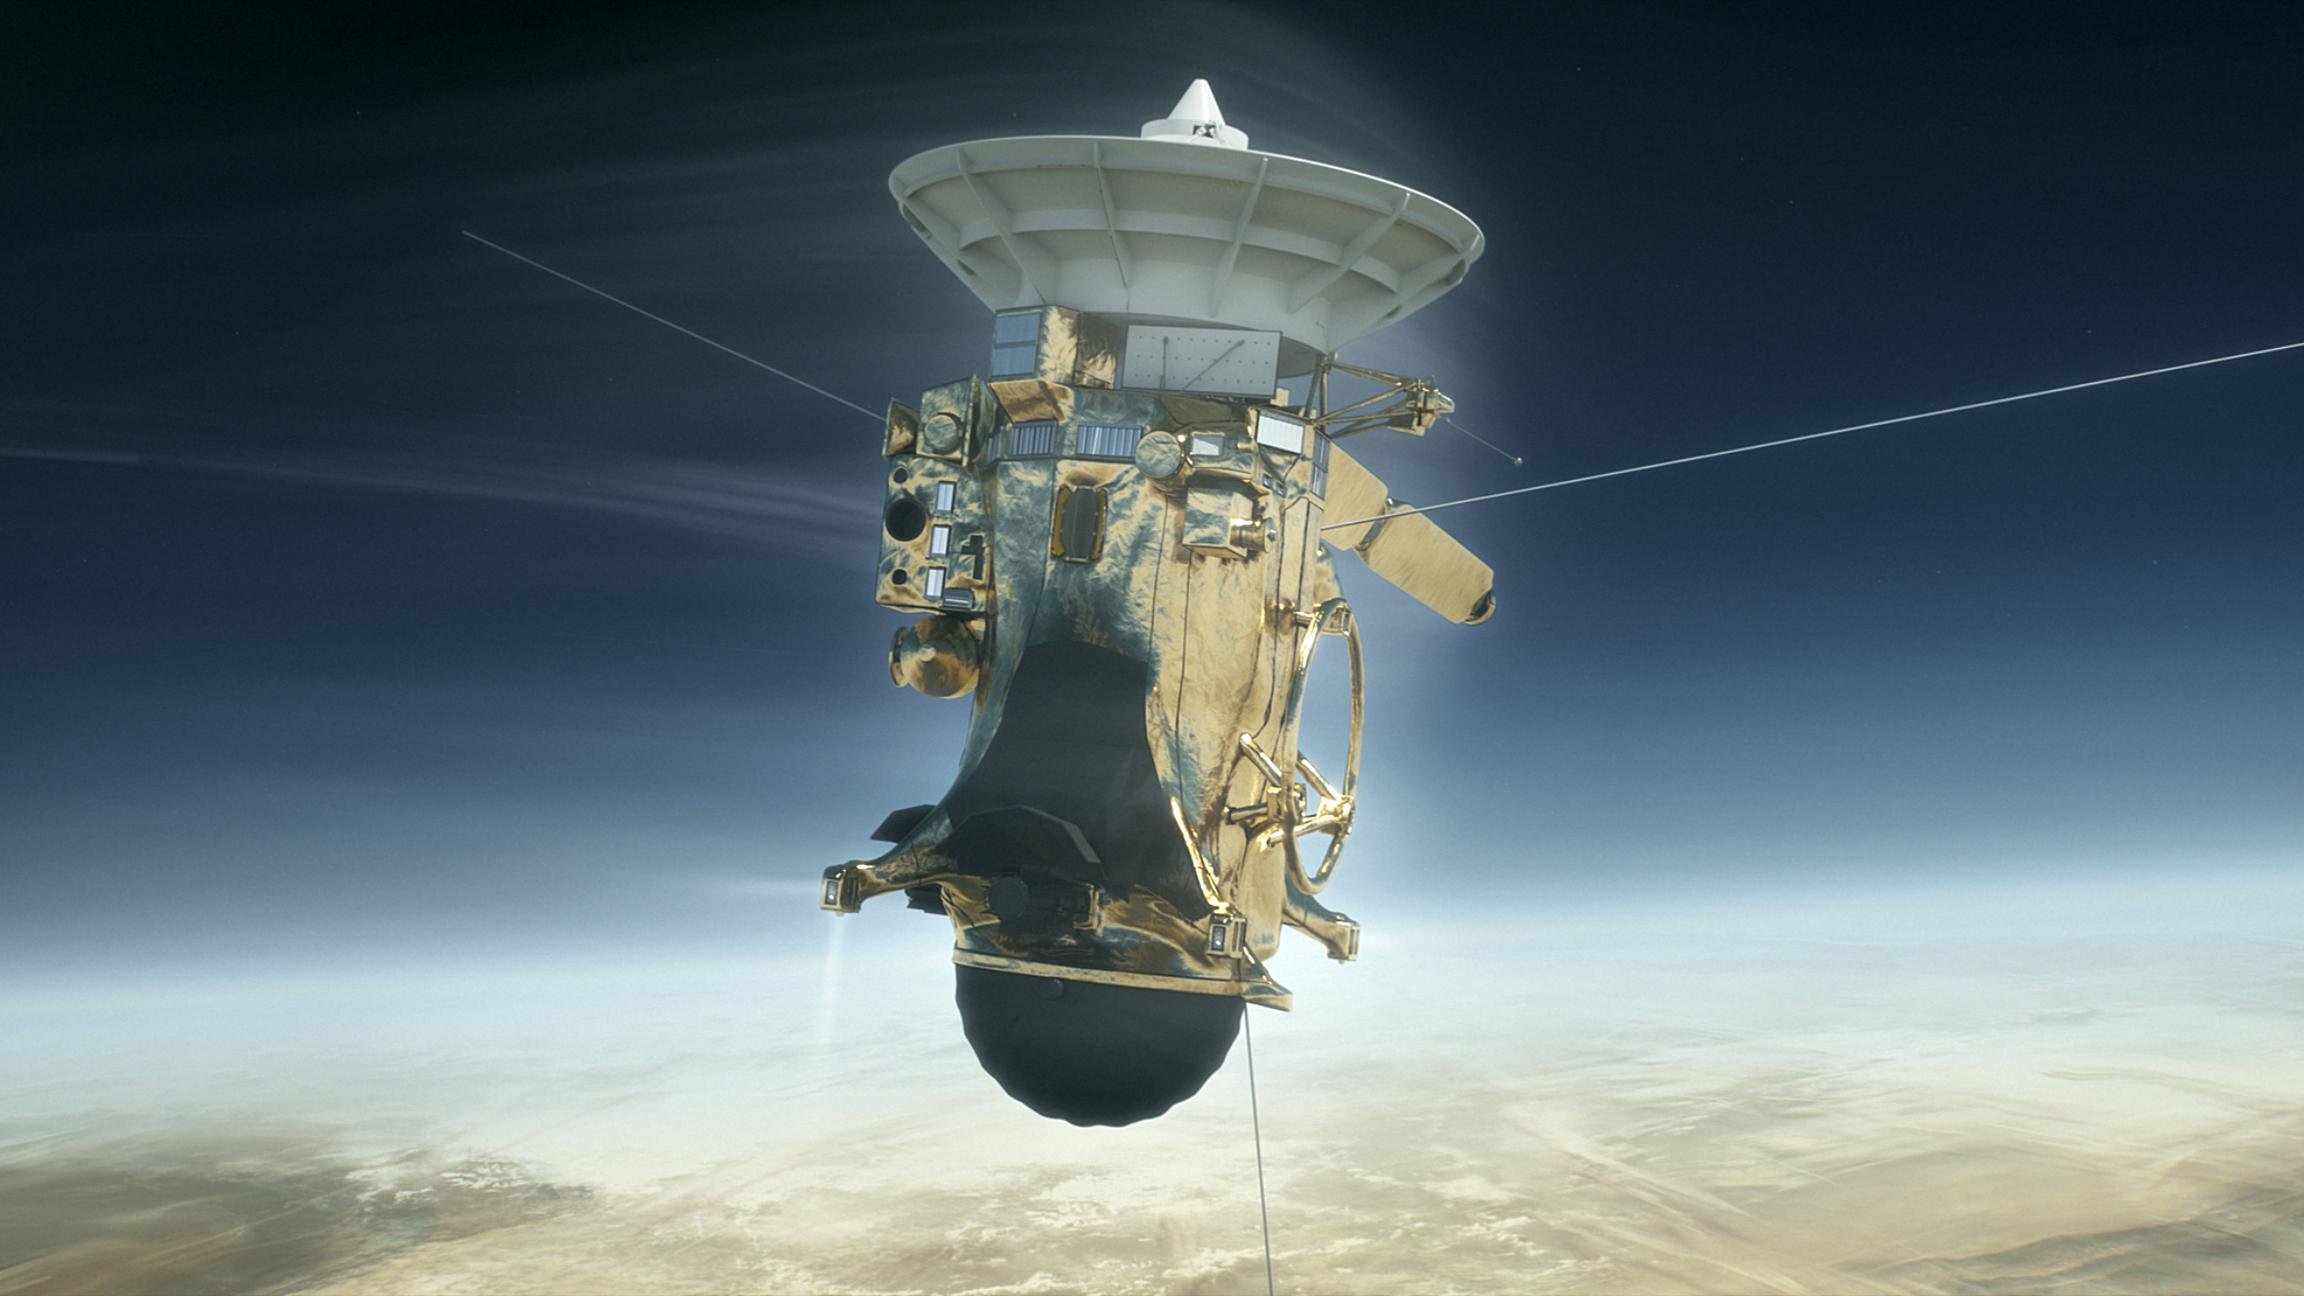 NASA's Cassini spacecraft is shown during its Sept. 15, 2017, plunge into Saturn's atmosphere in this artist's depiction. ( Credit: NASA / JPL-Caltech)